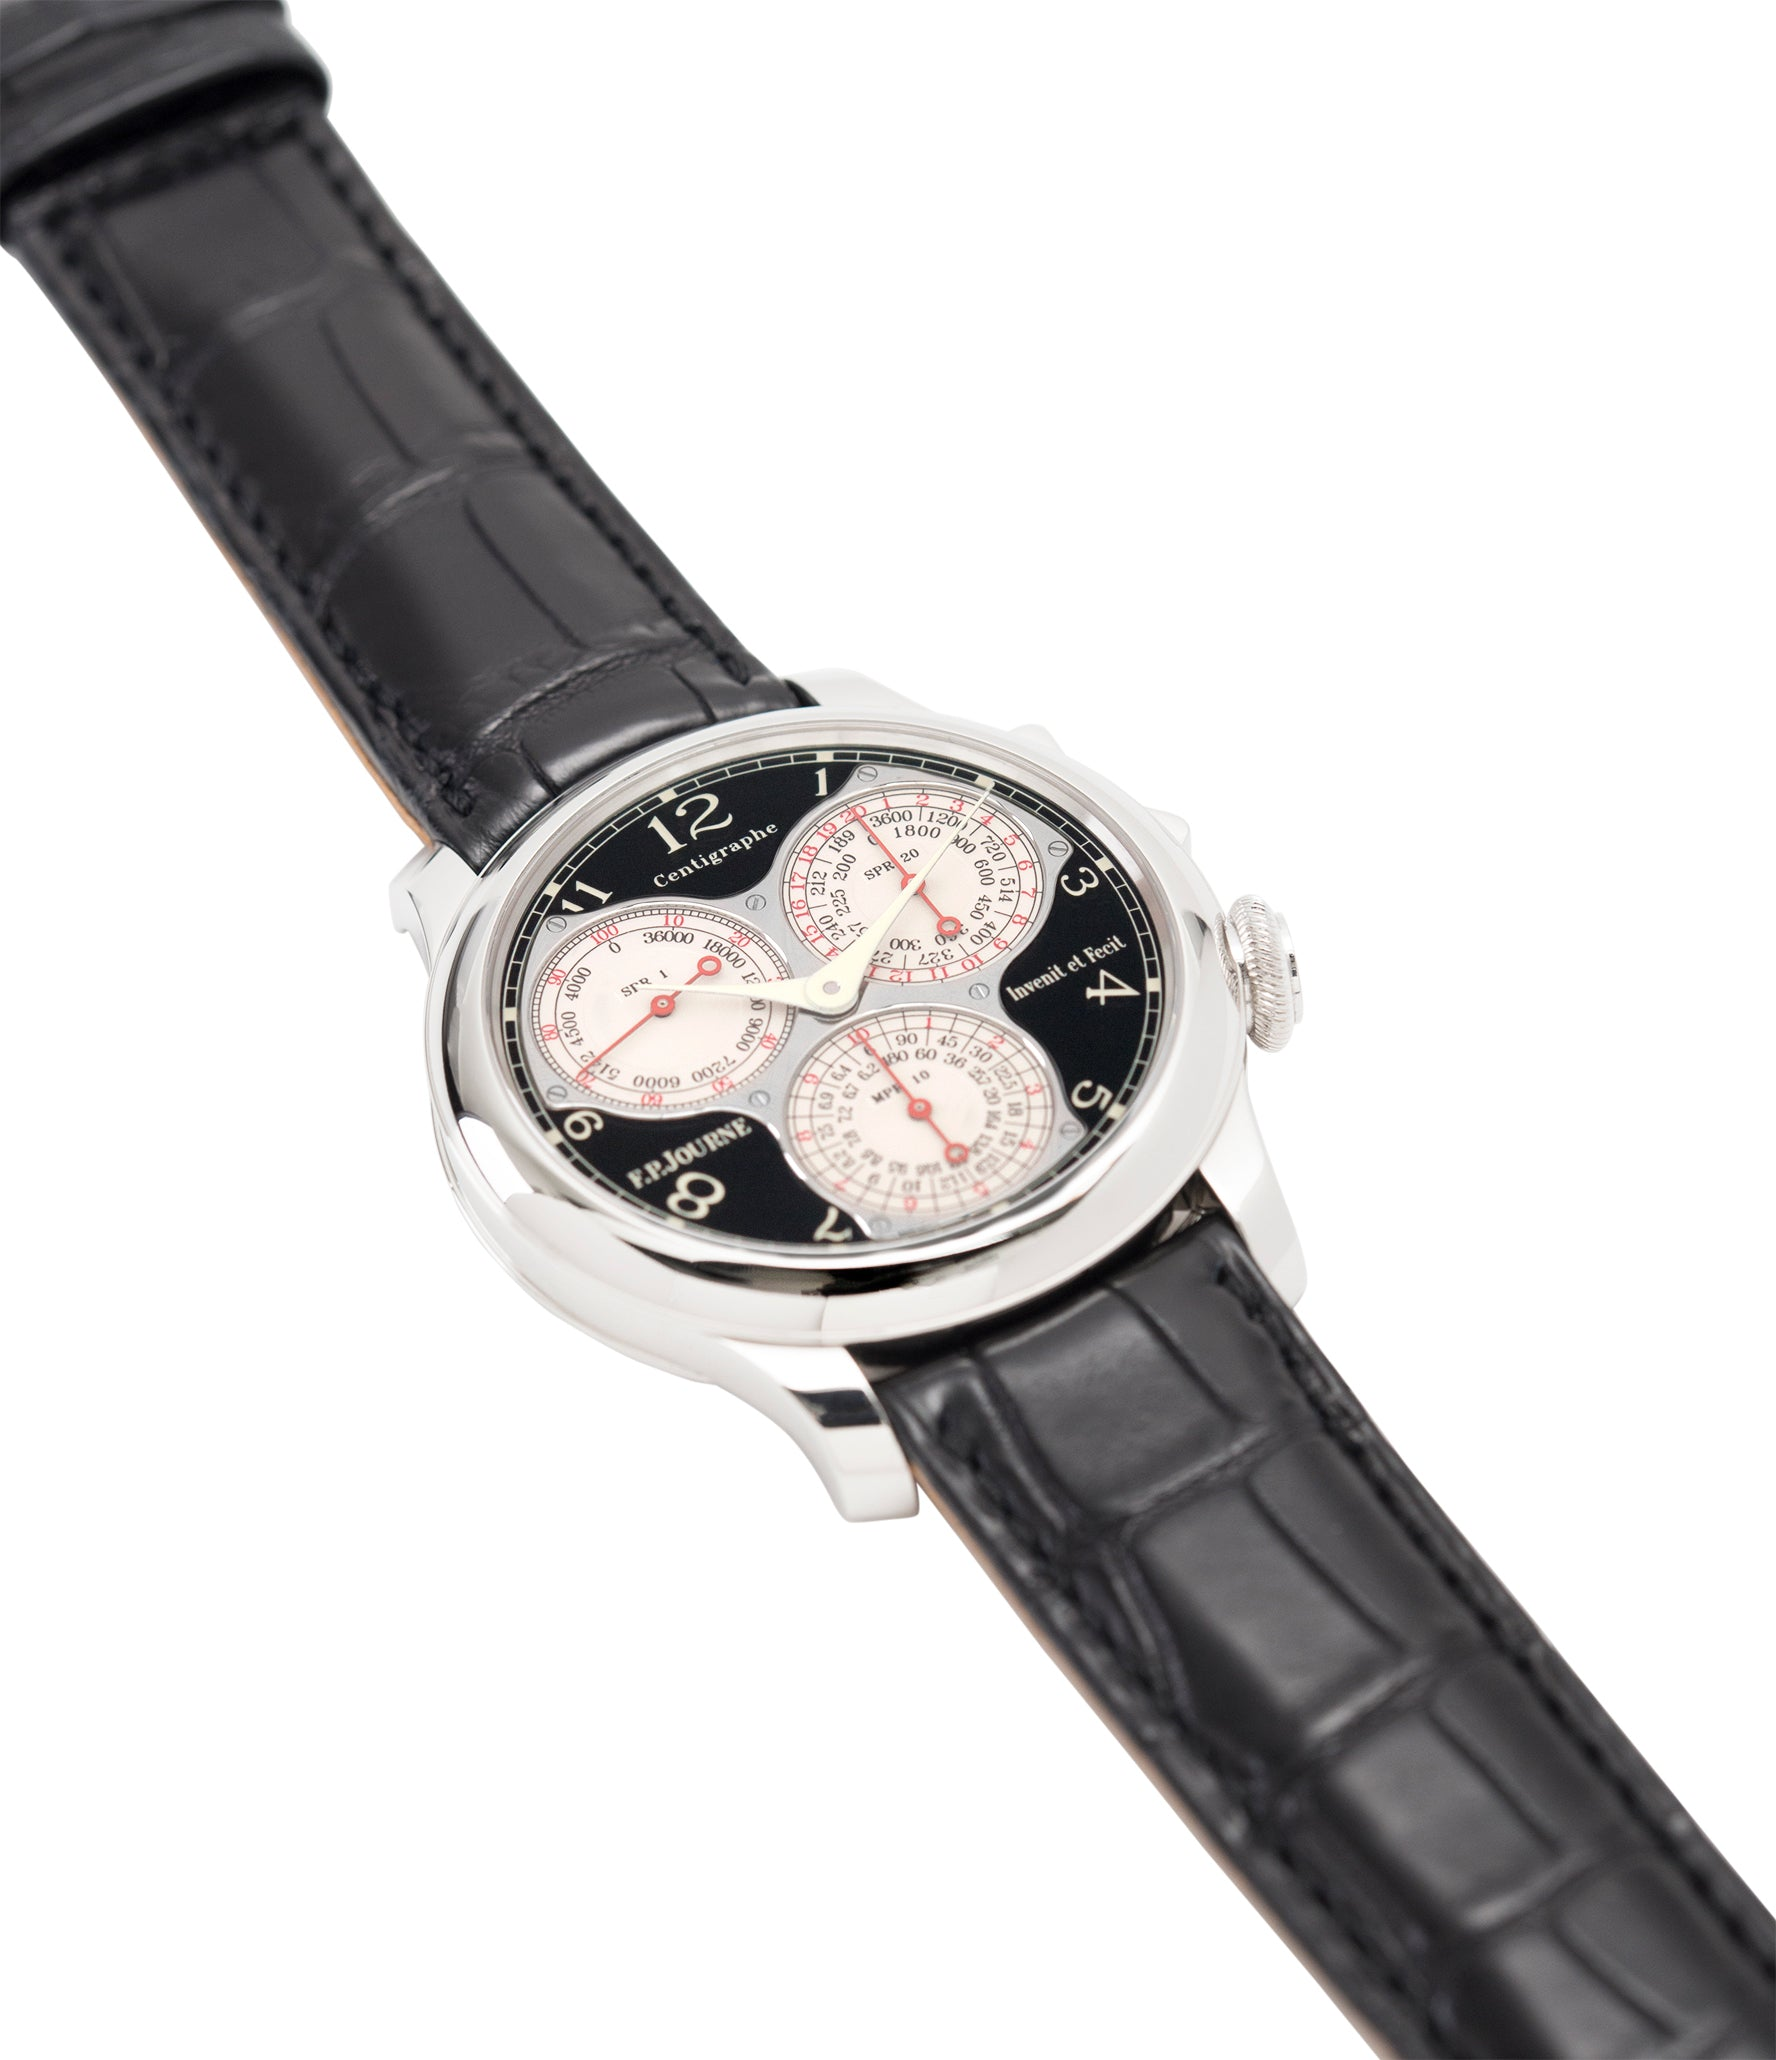 buy preowned F. P. Journe Centigraphe Souverain Black Label 40 mm pre-owned rare watch for sale online at A Collected Man London approved retailer of independent watchmakers